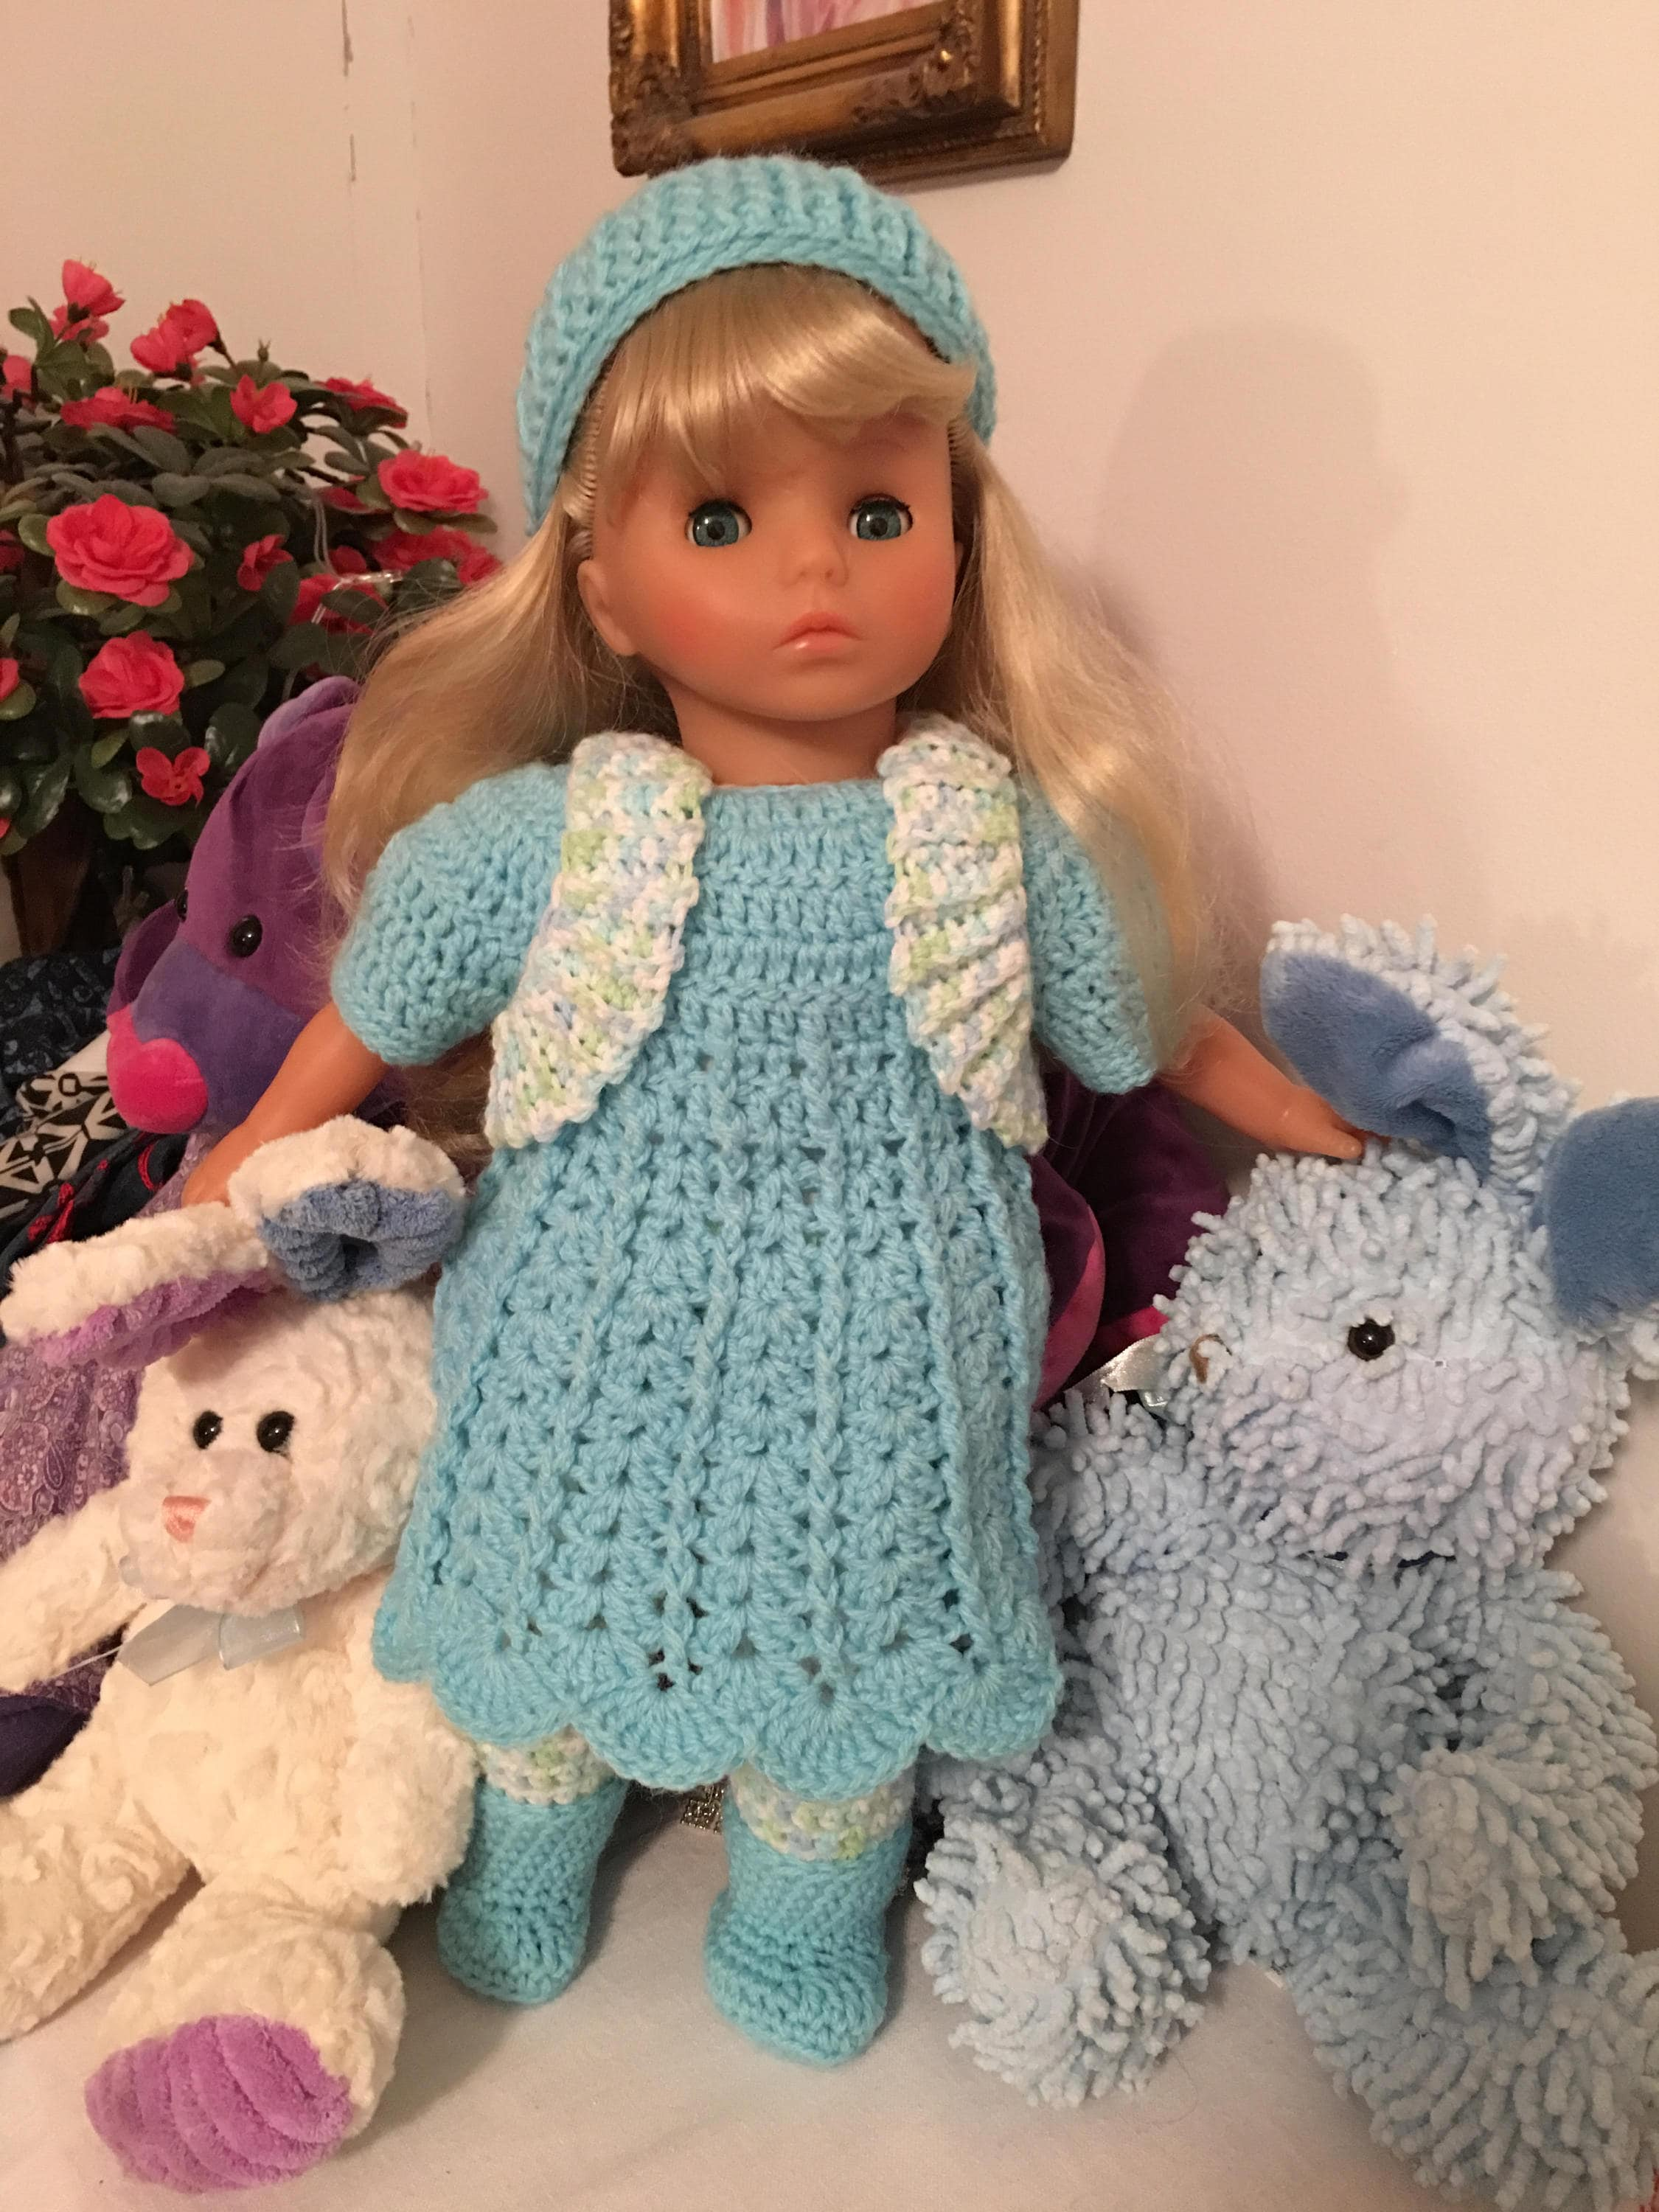 Vintage Vintage Vintage Lissi Doll 19 inches tall Vinyl and Cloth Perfect Facial Paint Long Silky Blonde Hair with 3 Outfits in Perfect Condition    1 c771c0